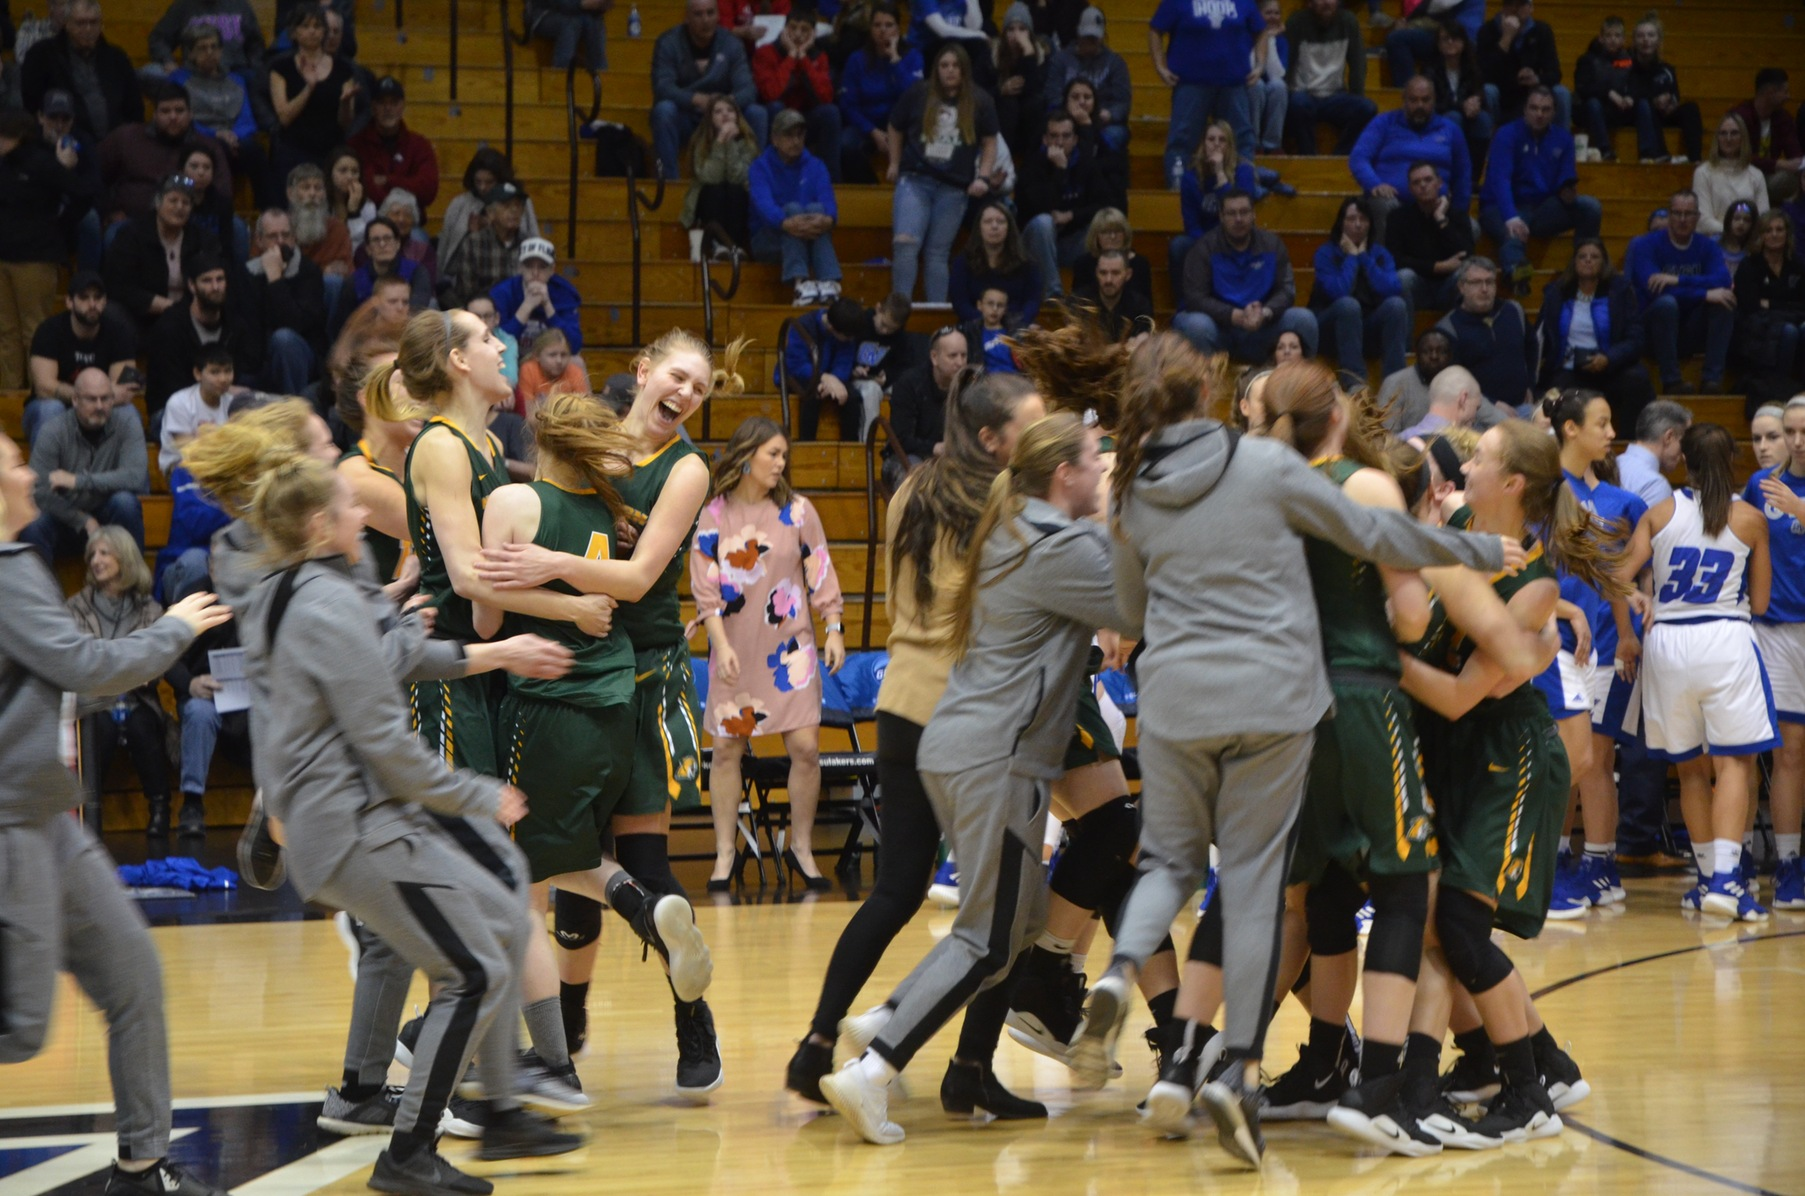 NMU Advances to GLIAC Finals With 48-37 Upset Victory over #7 GVSU